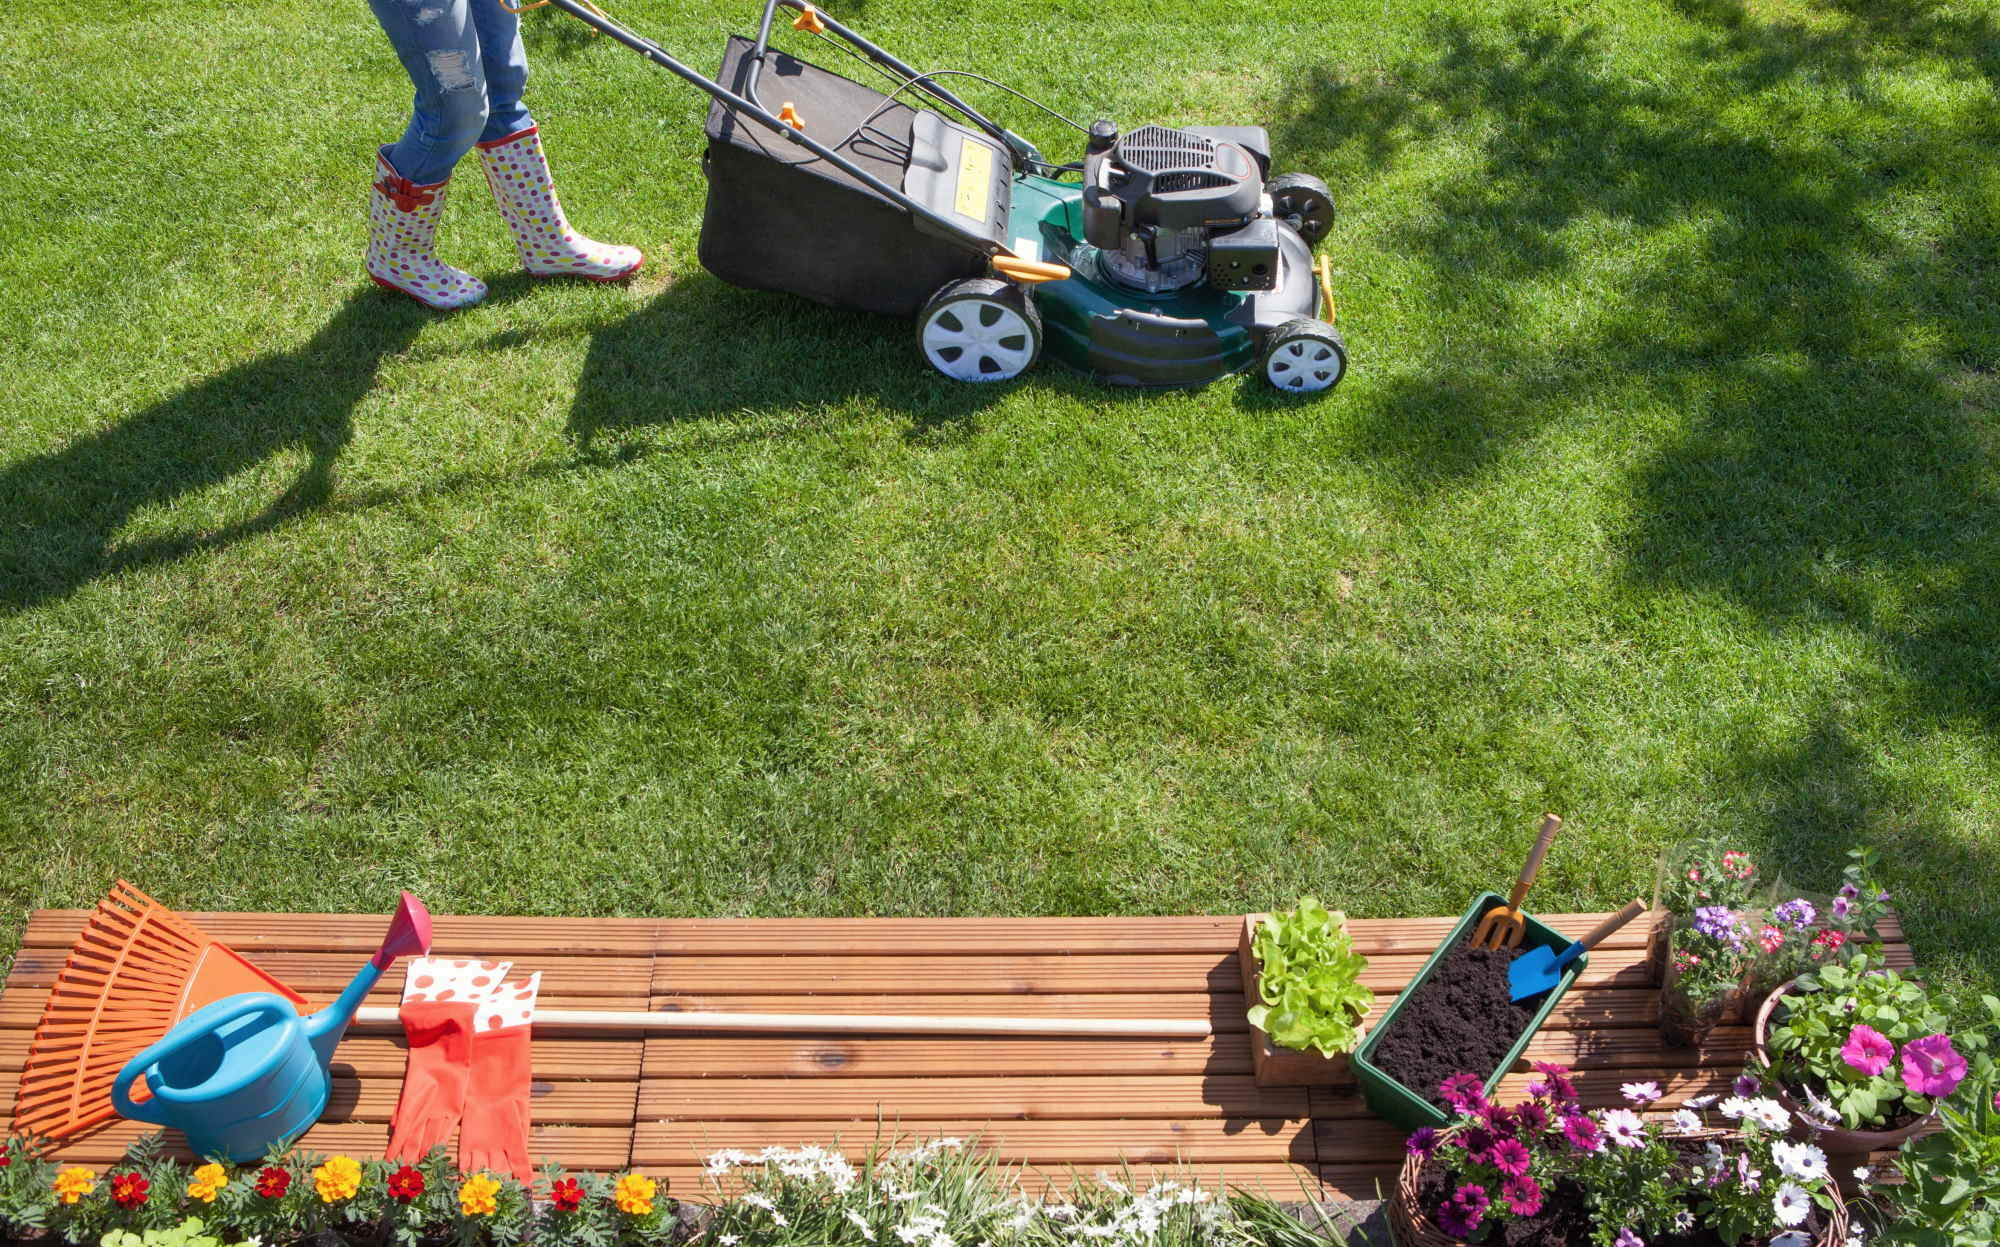 Lawn care doesn't have to be difficult